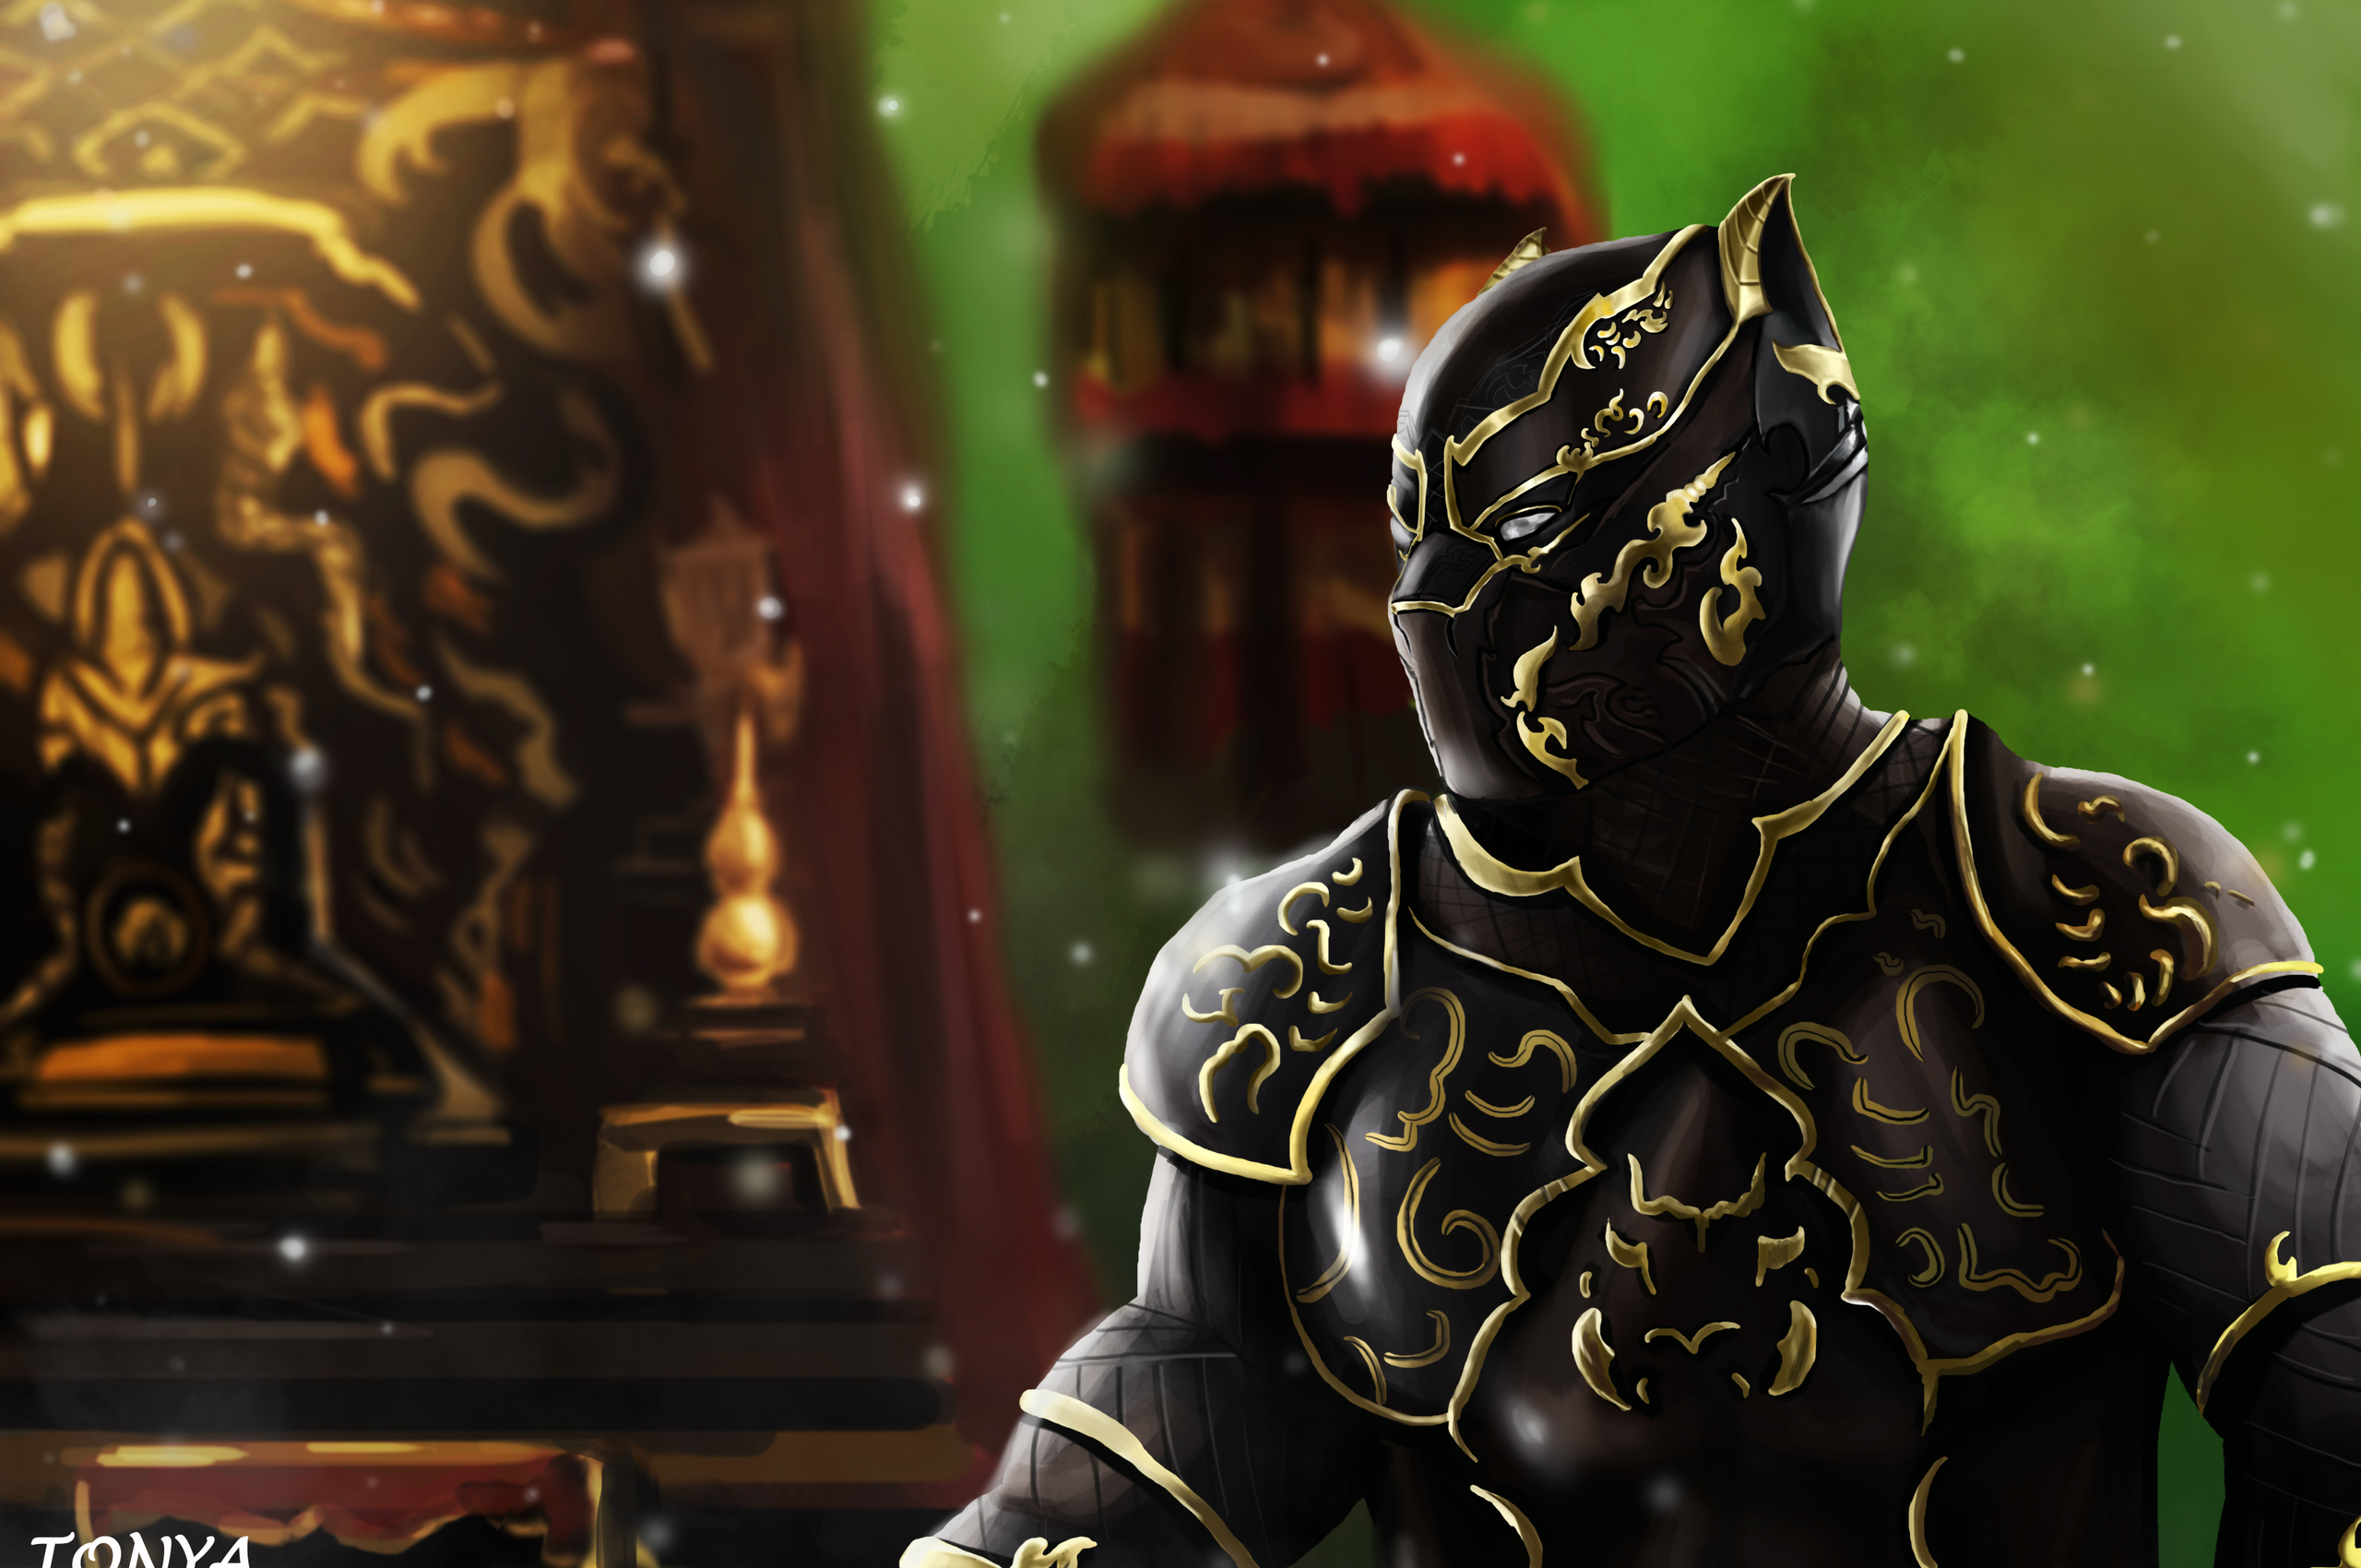 black-panther-wakanda-king-artwork-5v.jpg